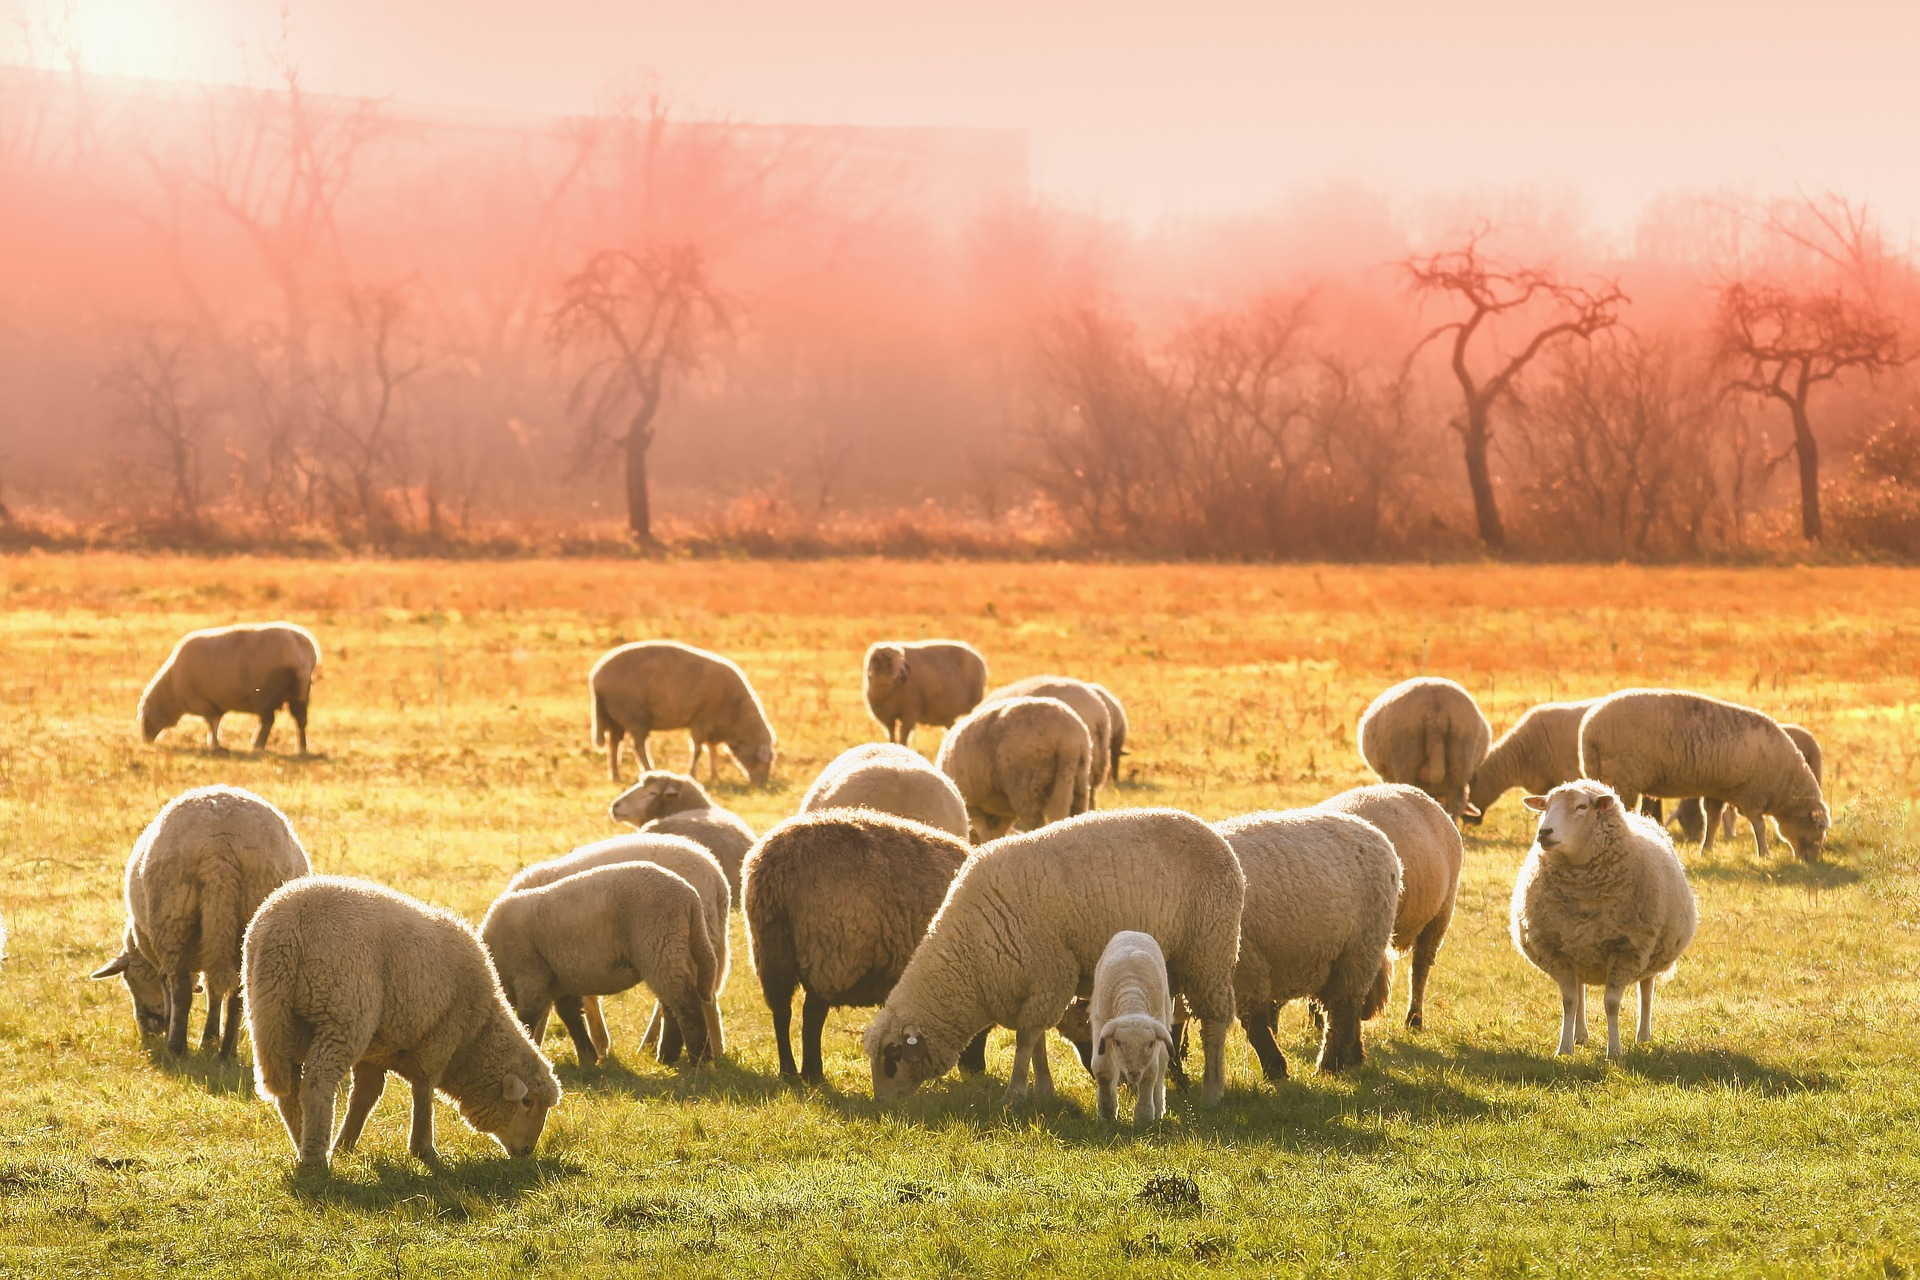 when the dung adds up